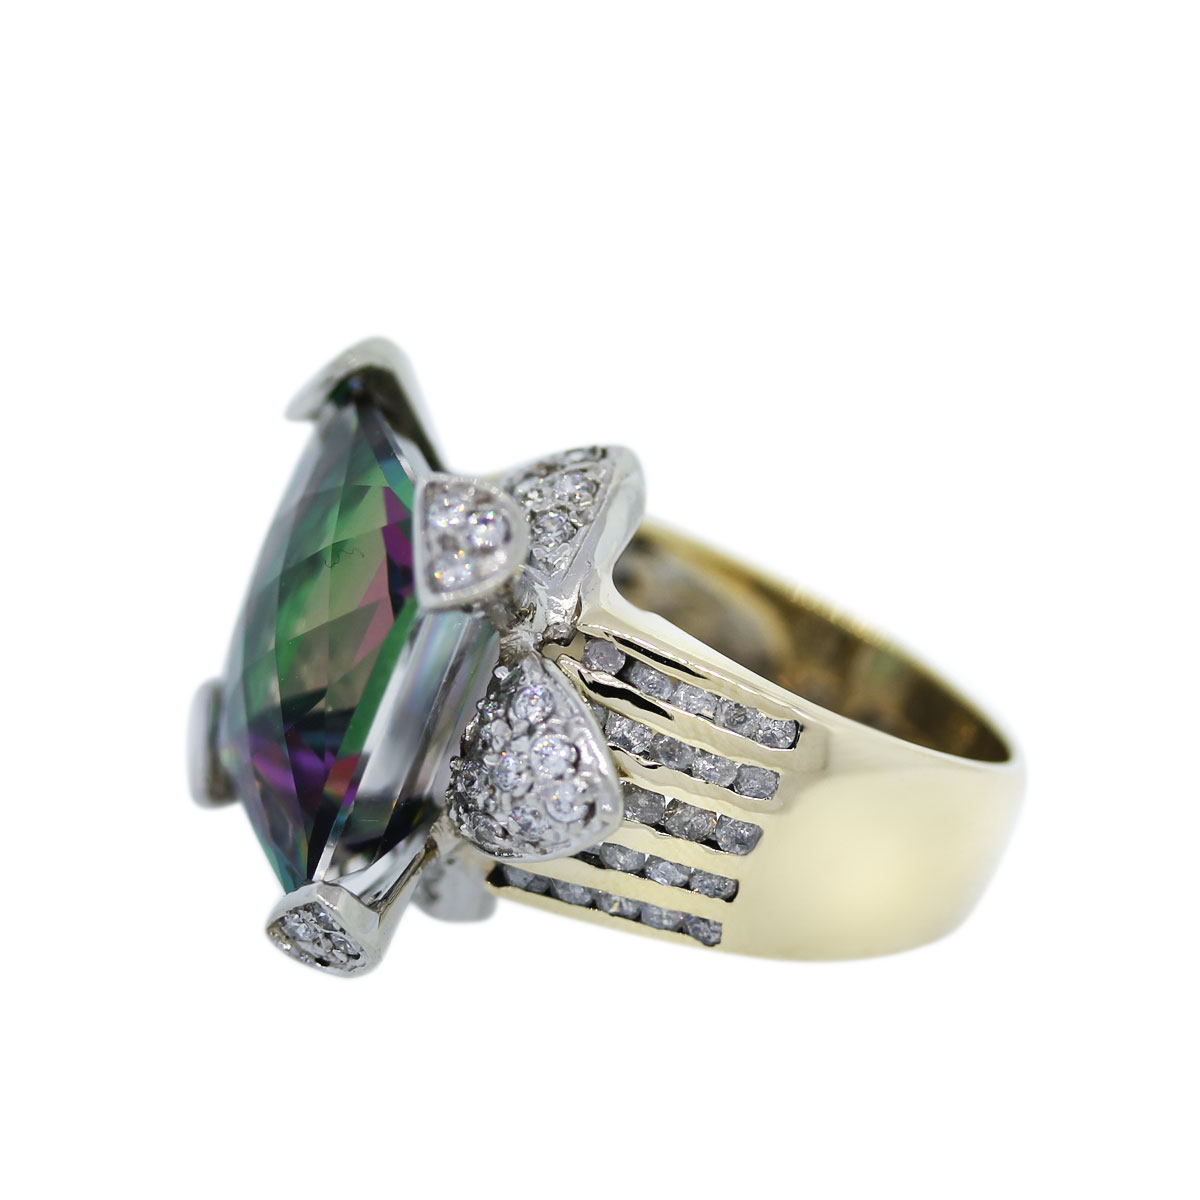 Synthetic Alexandrite Stone Ring